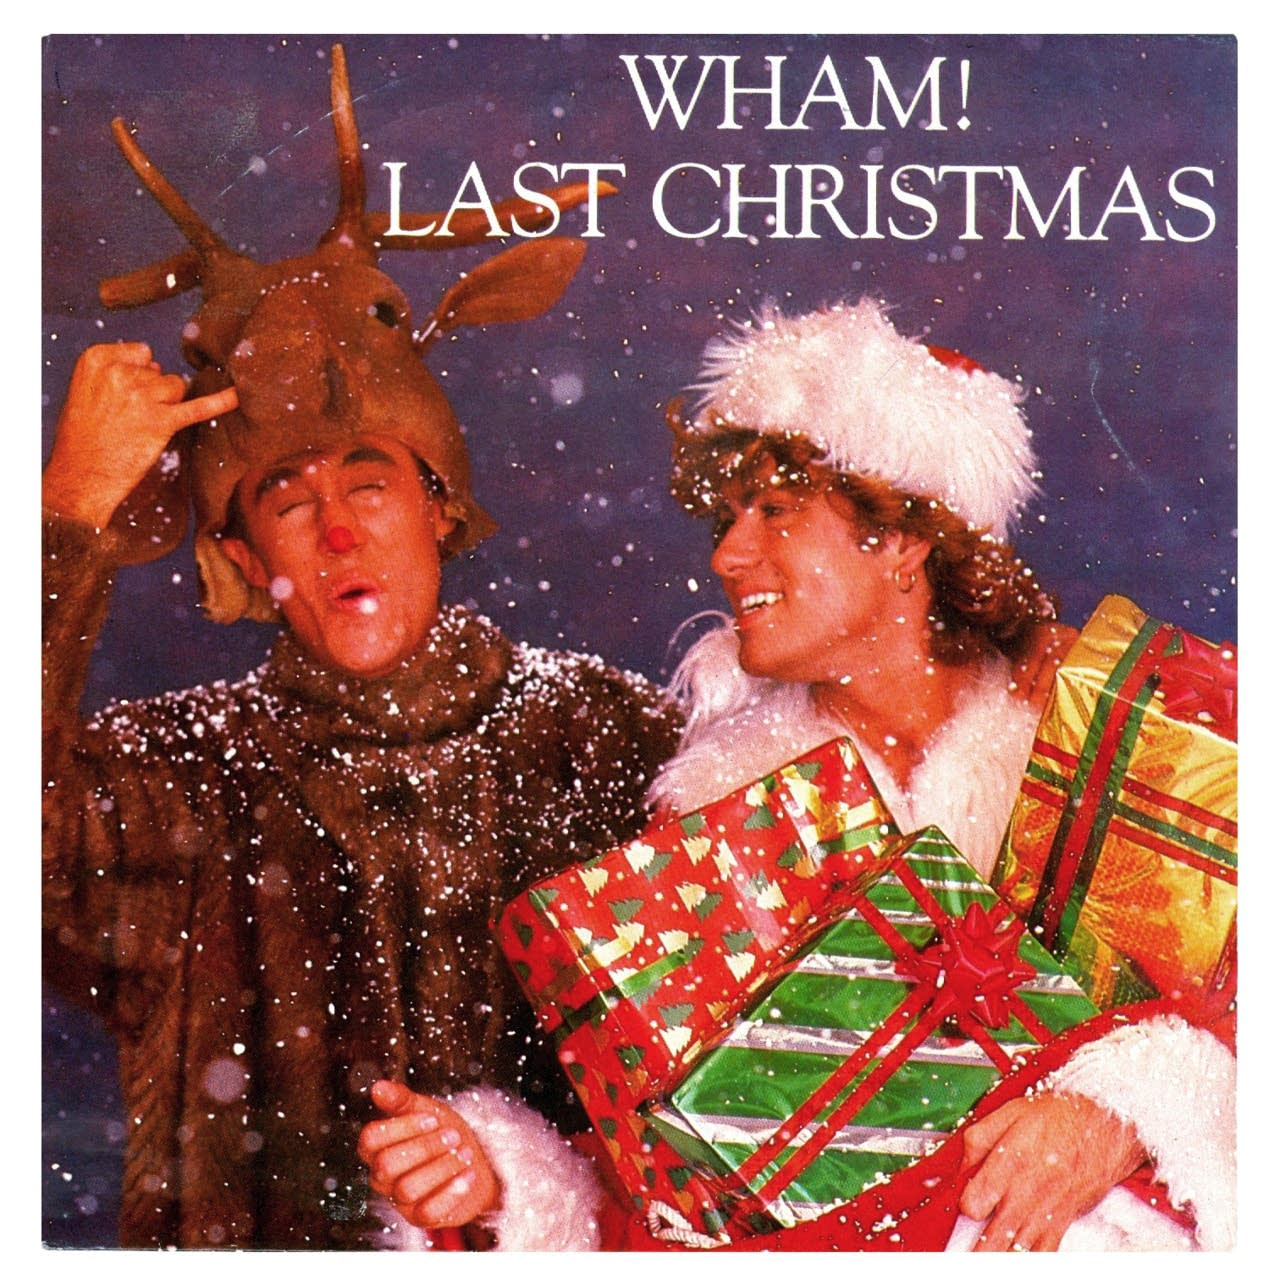 Wham! Last christmas [mp3 free download] youtube.